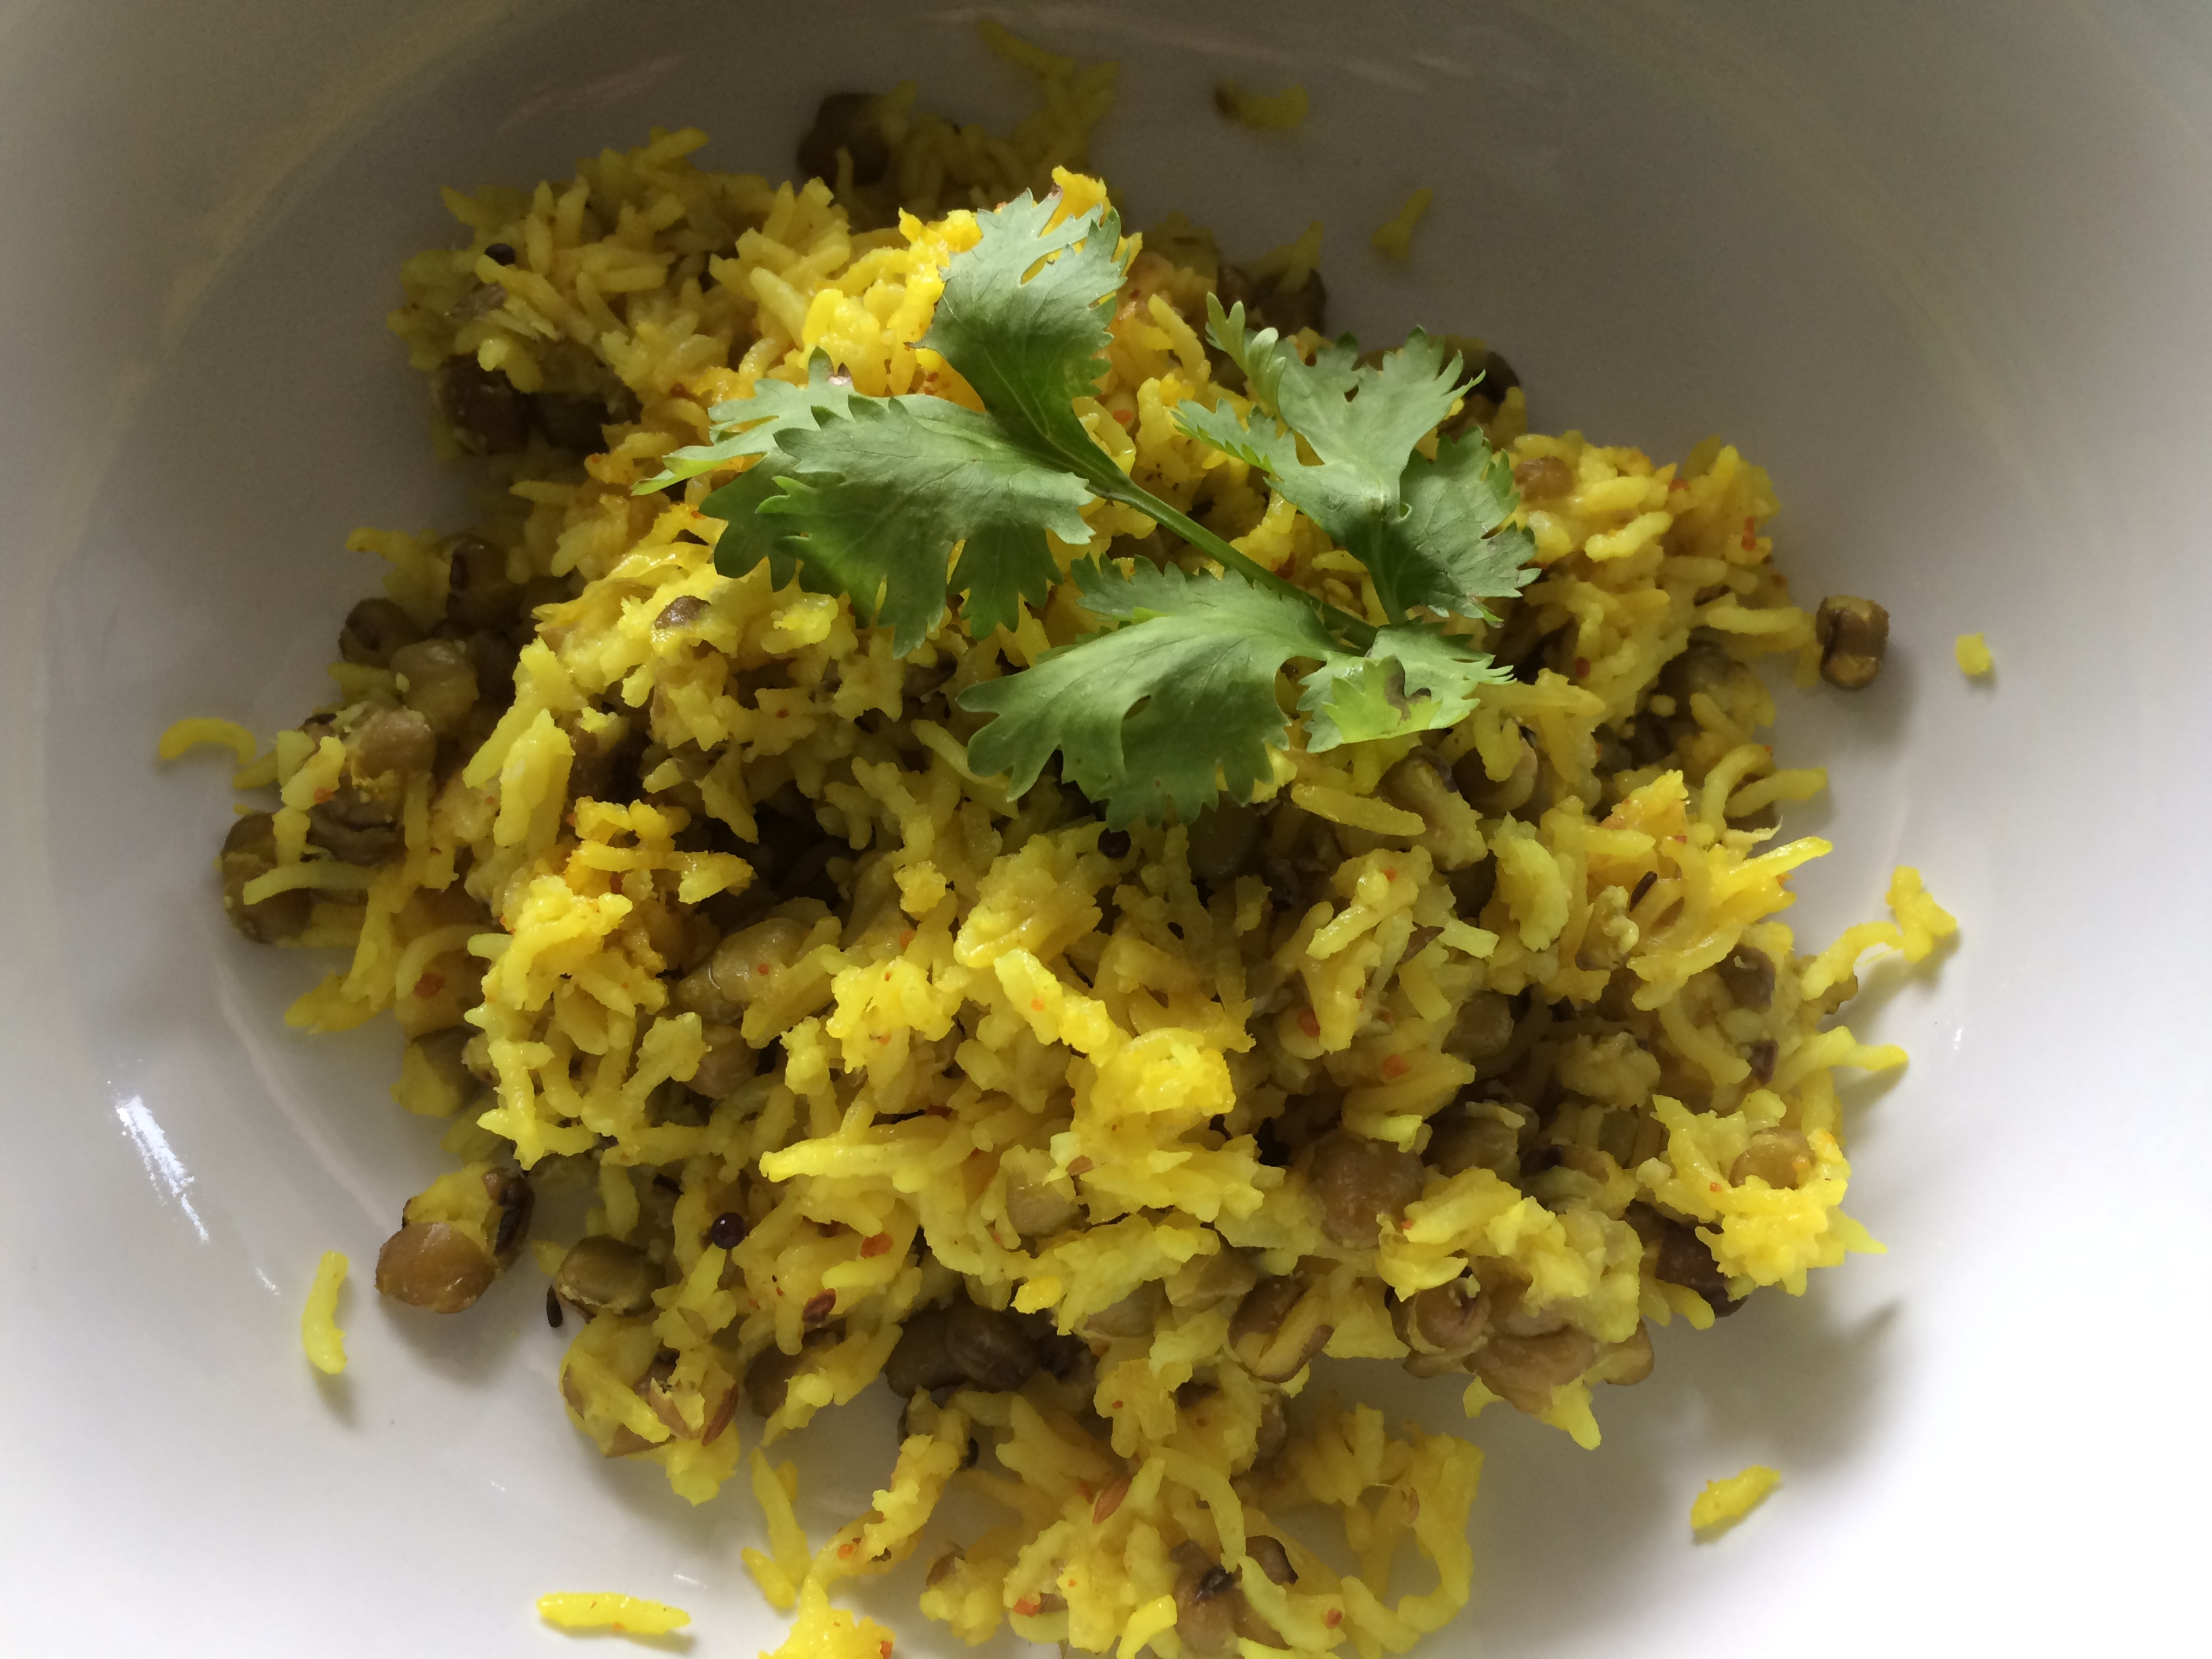 ayurvedic recipe: kitcheri